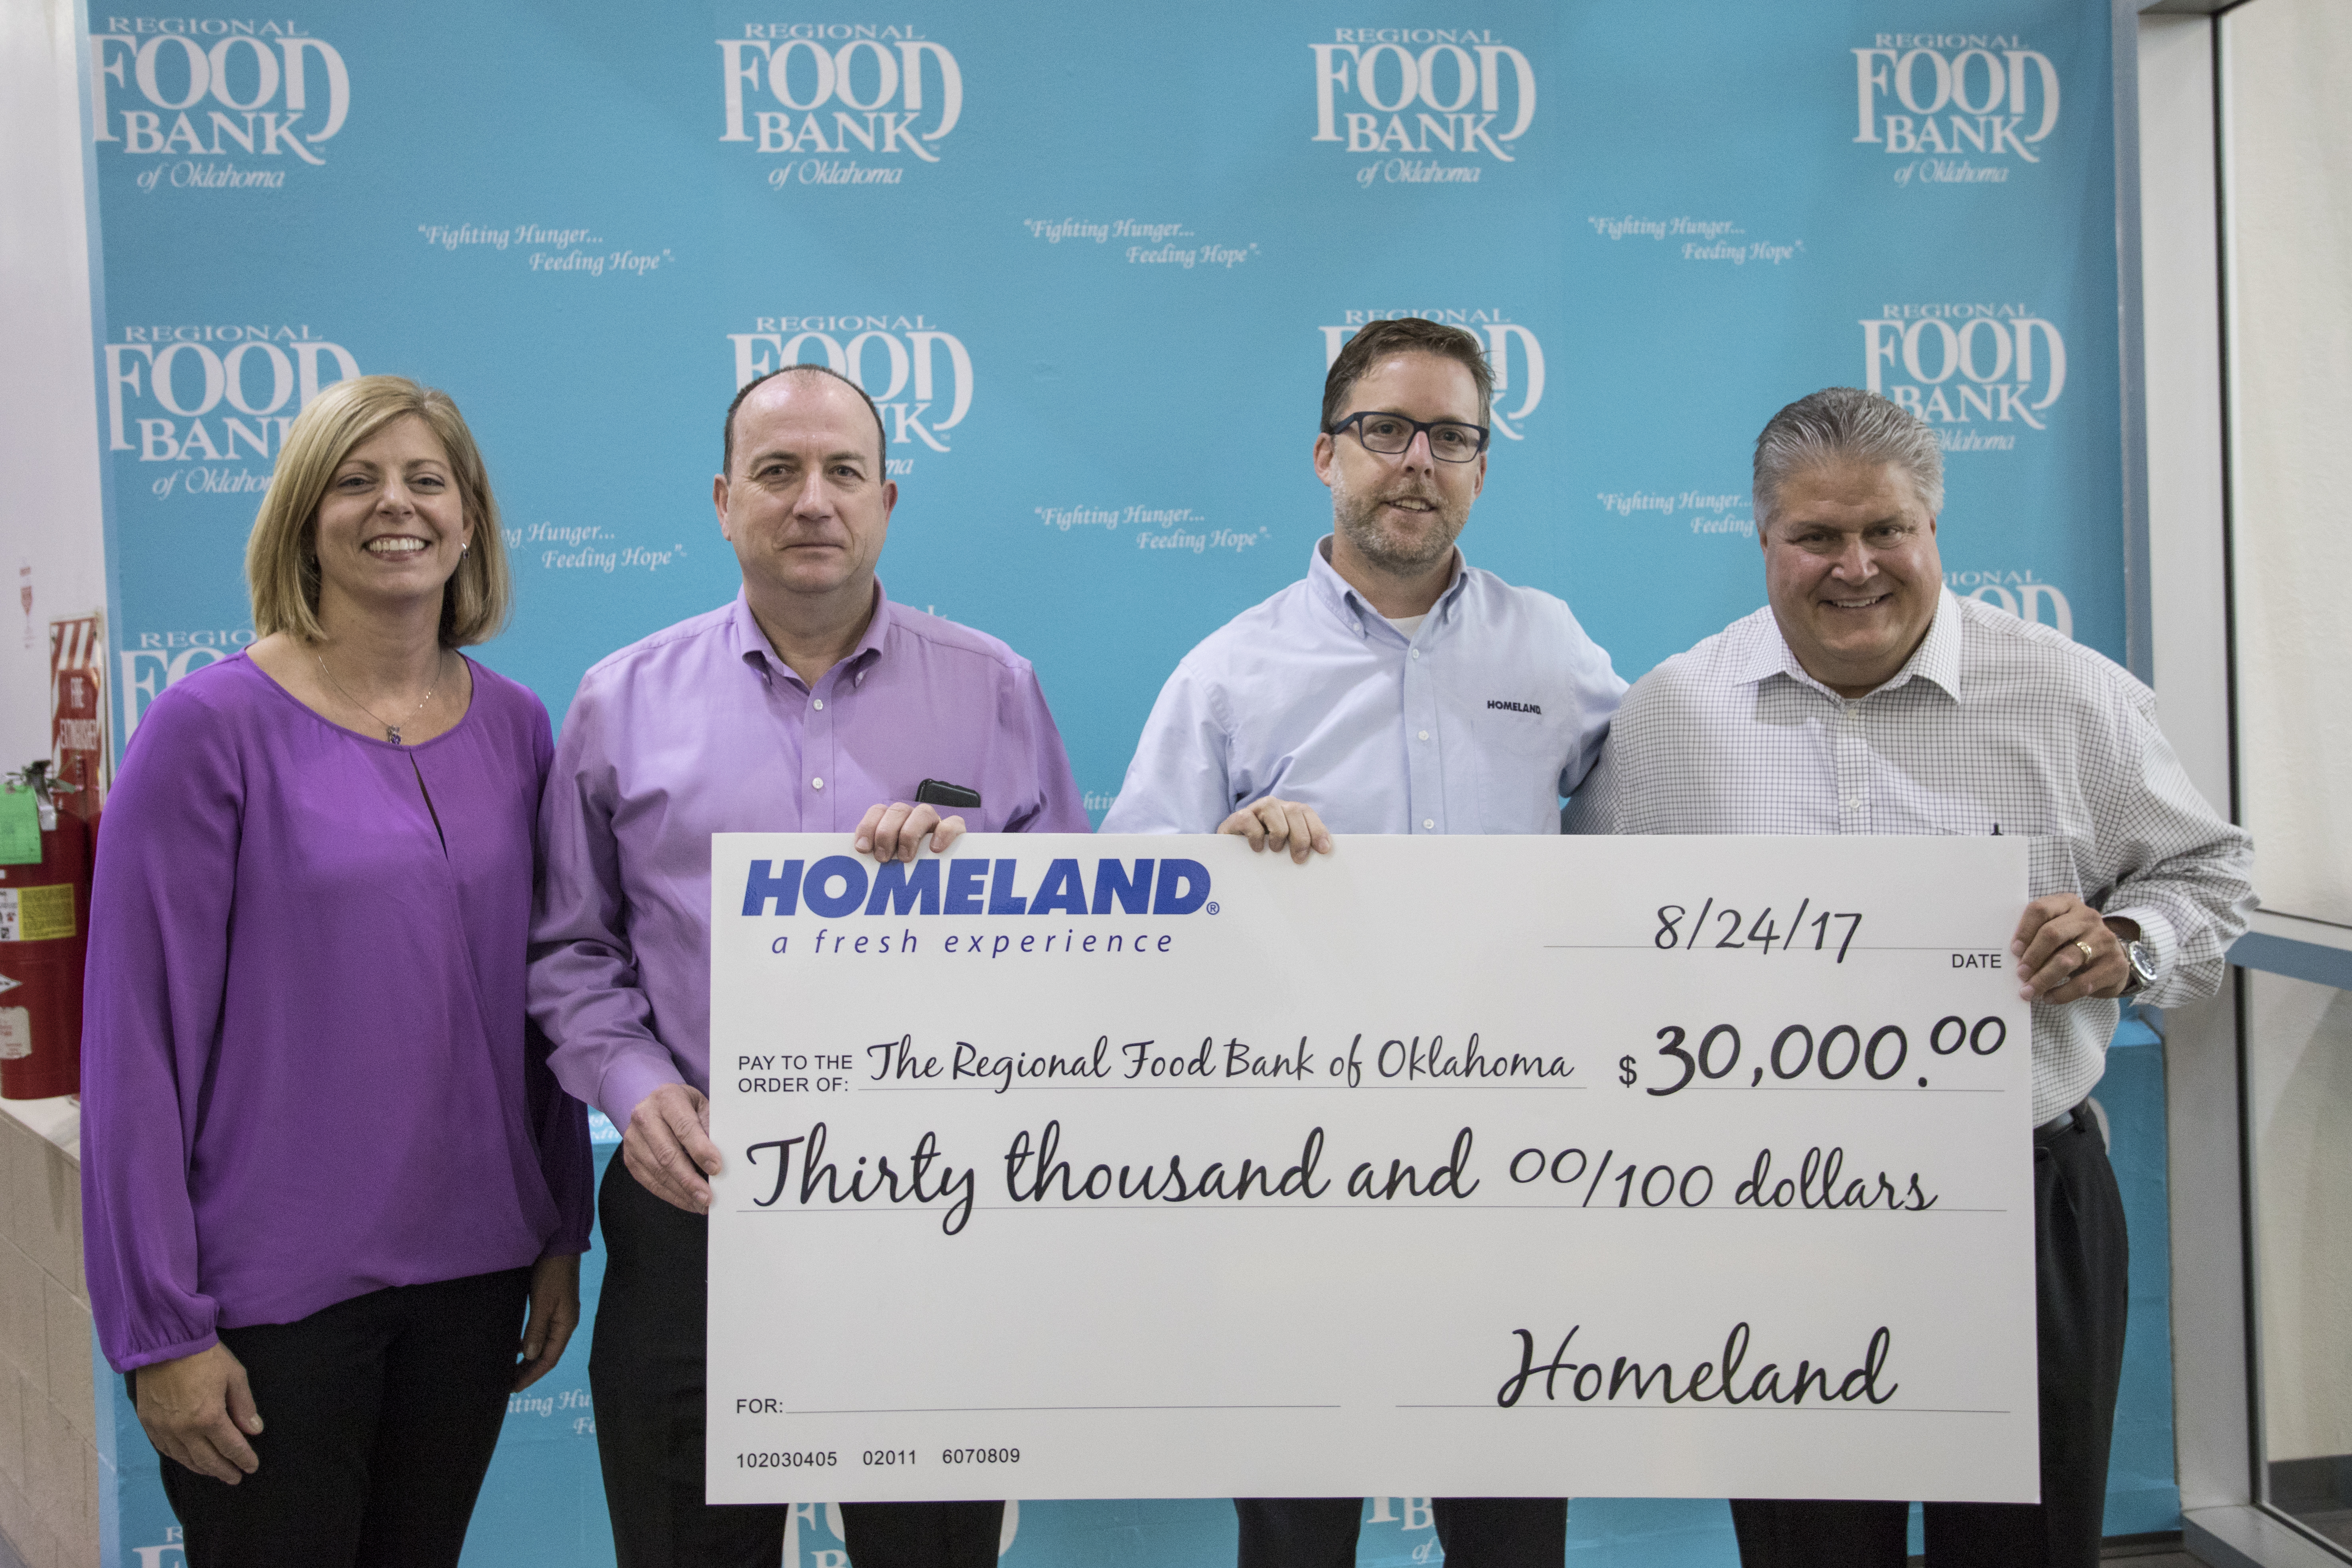 Homeland donation check presentation